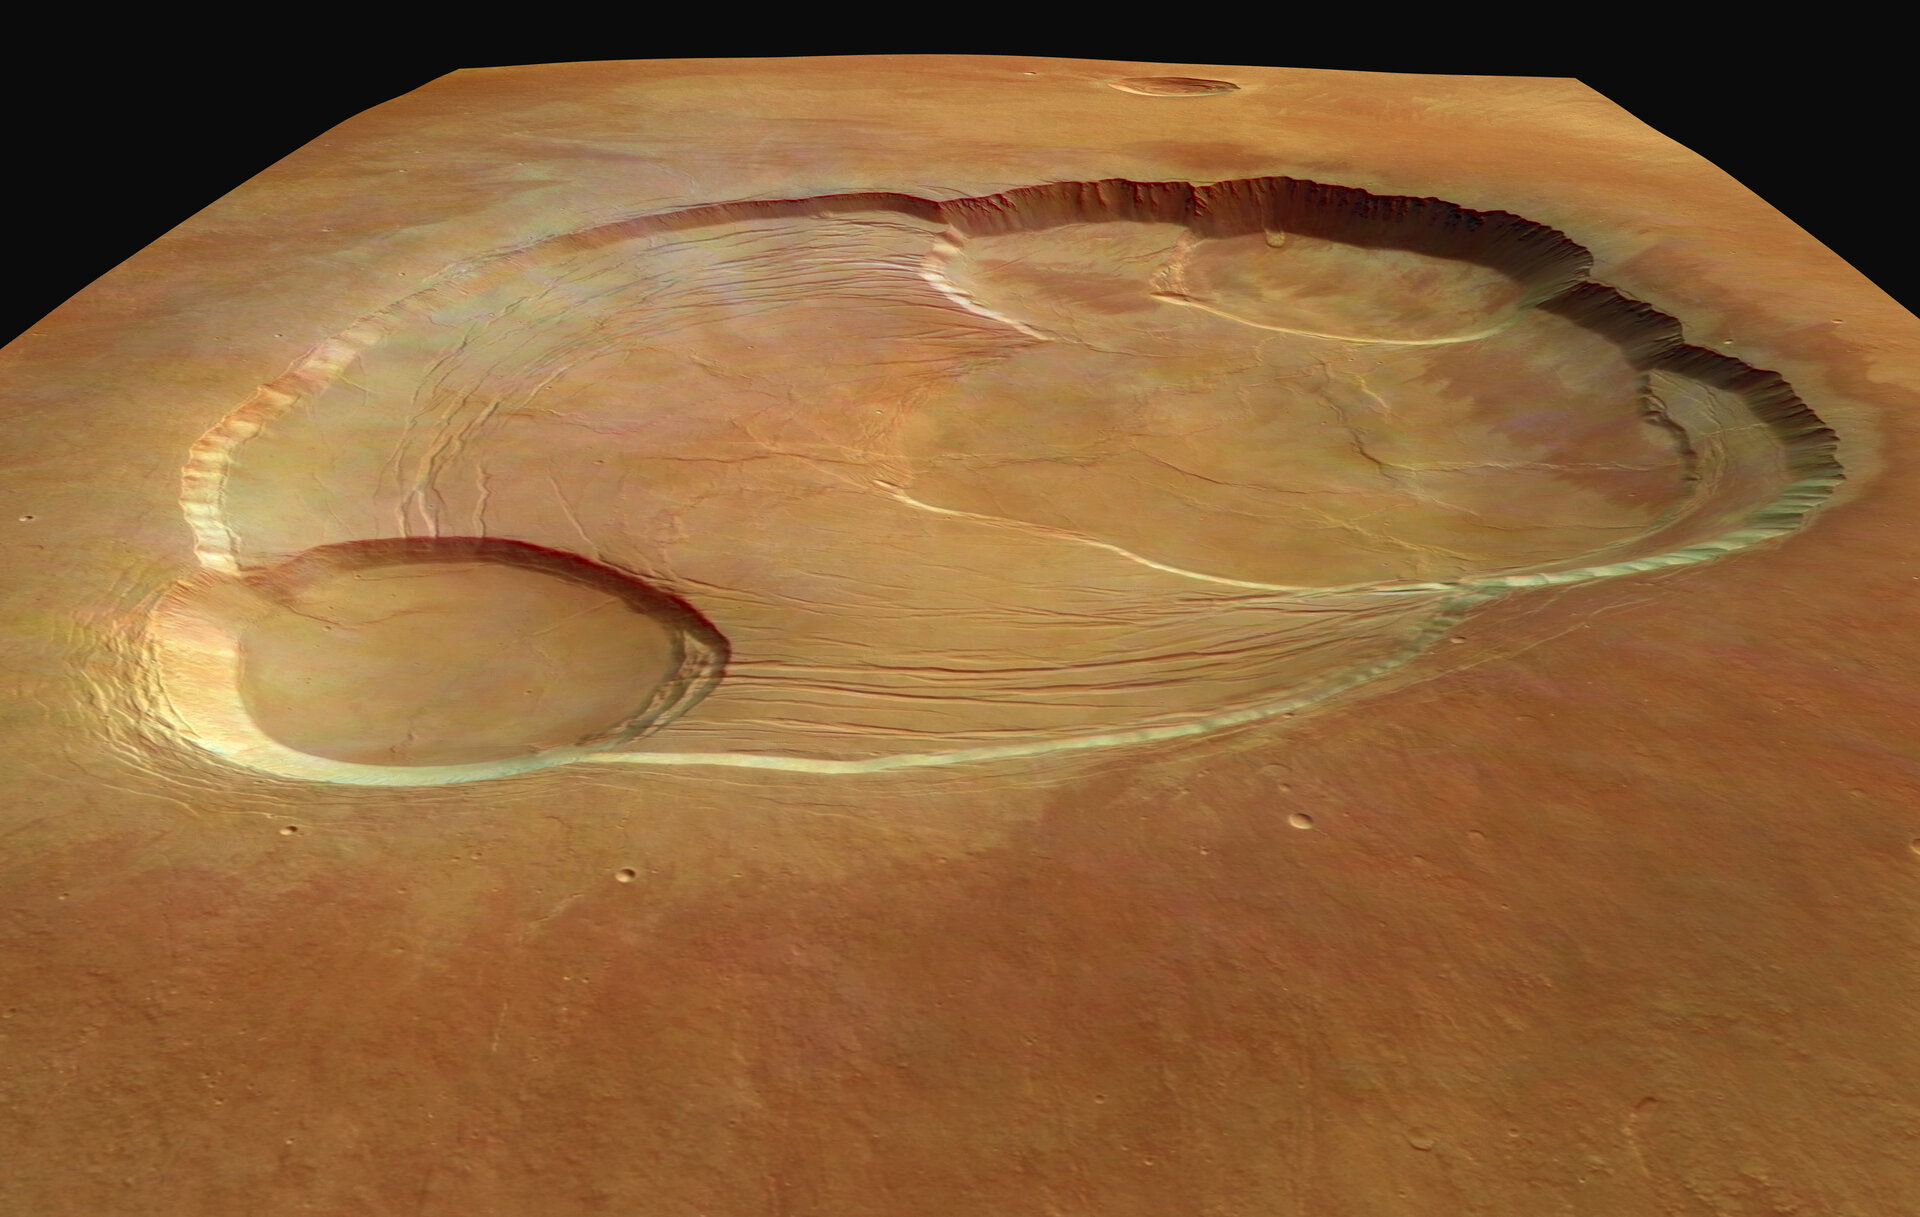 Wider perspective of the caldera - Mars Express